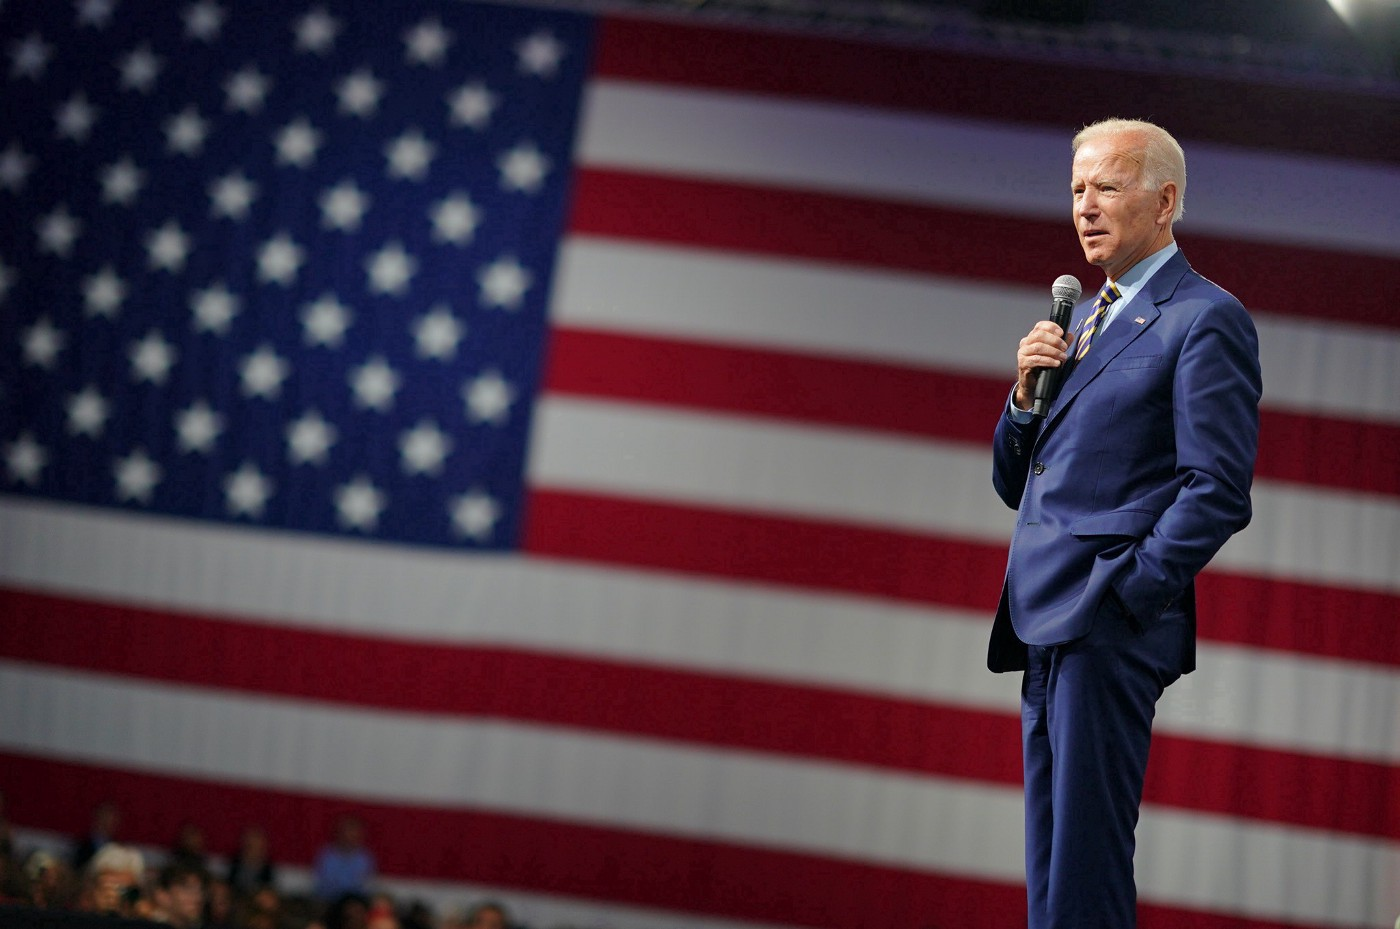 Joe Biden in profile standing and speaking into a hand-held microphone. There is an American Flag behind him.